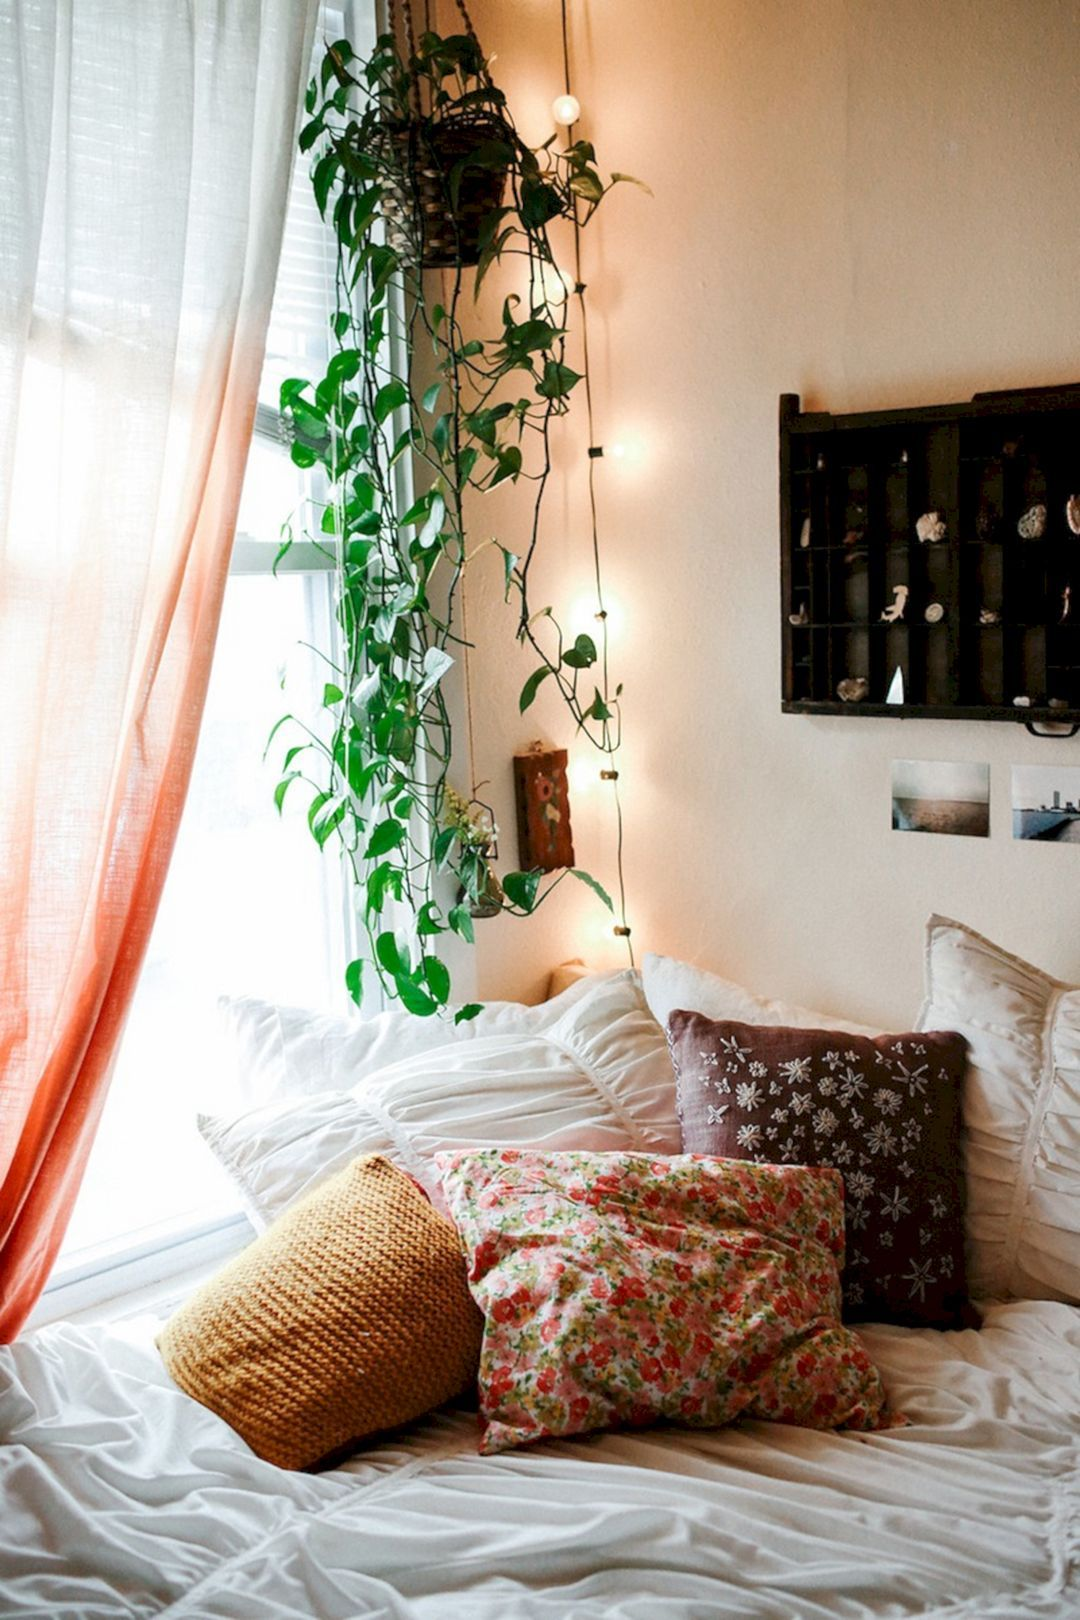 51 Best Urban Sky Bedroom Style Ideas Freshouz Com Bedroom Styles Room Inspiration Urban Outfitters Bedroom